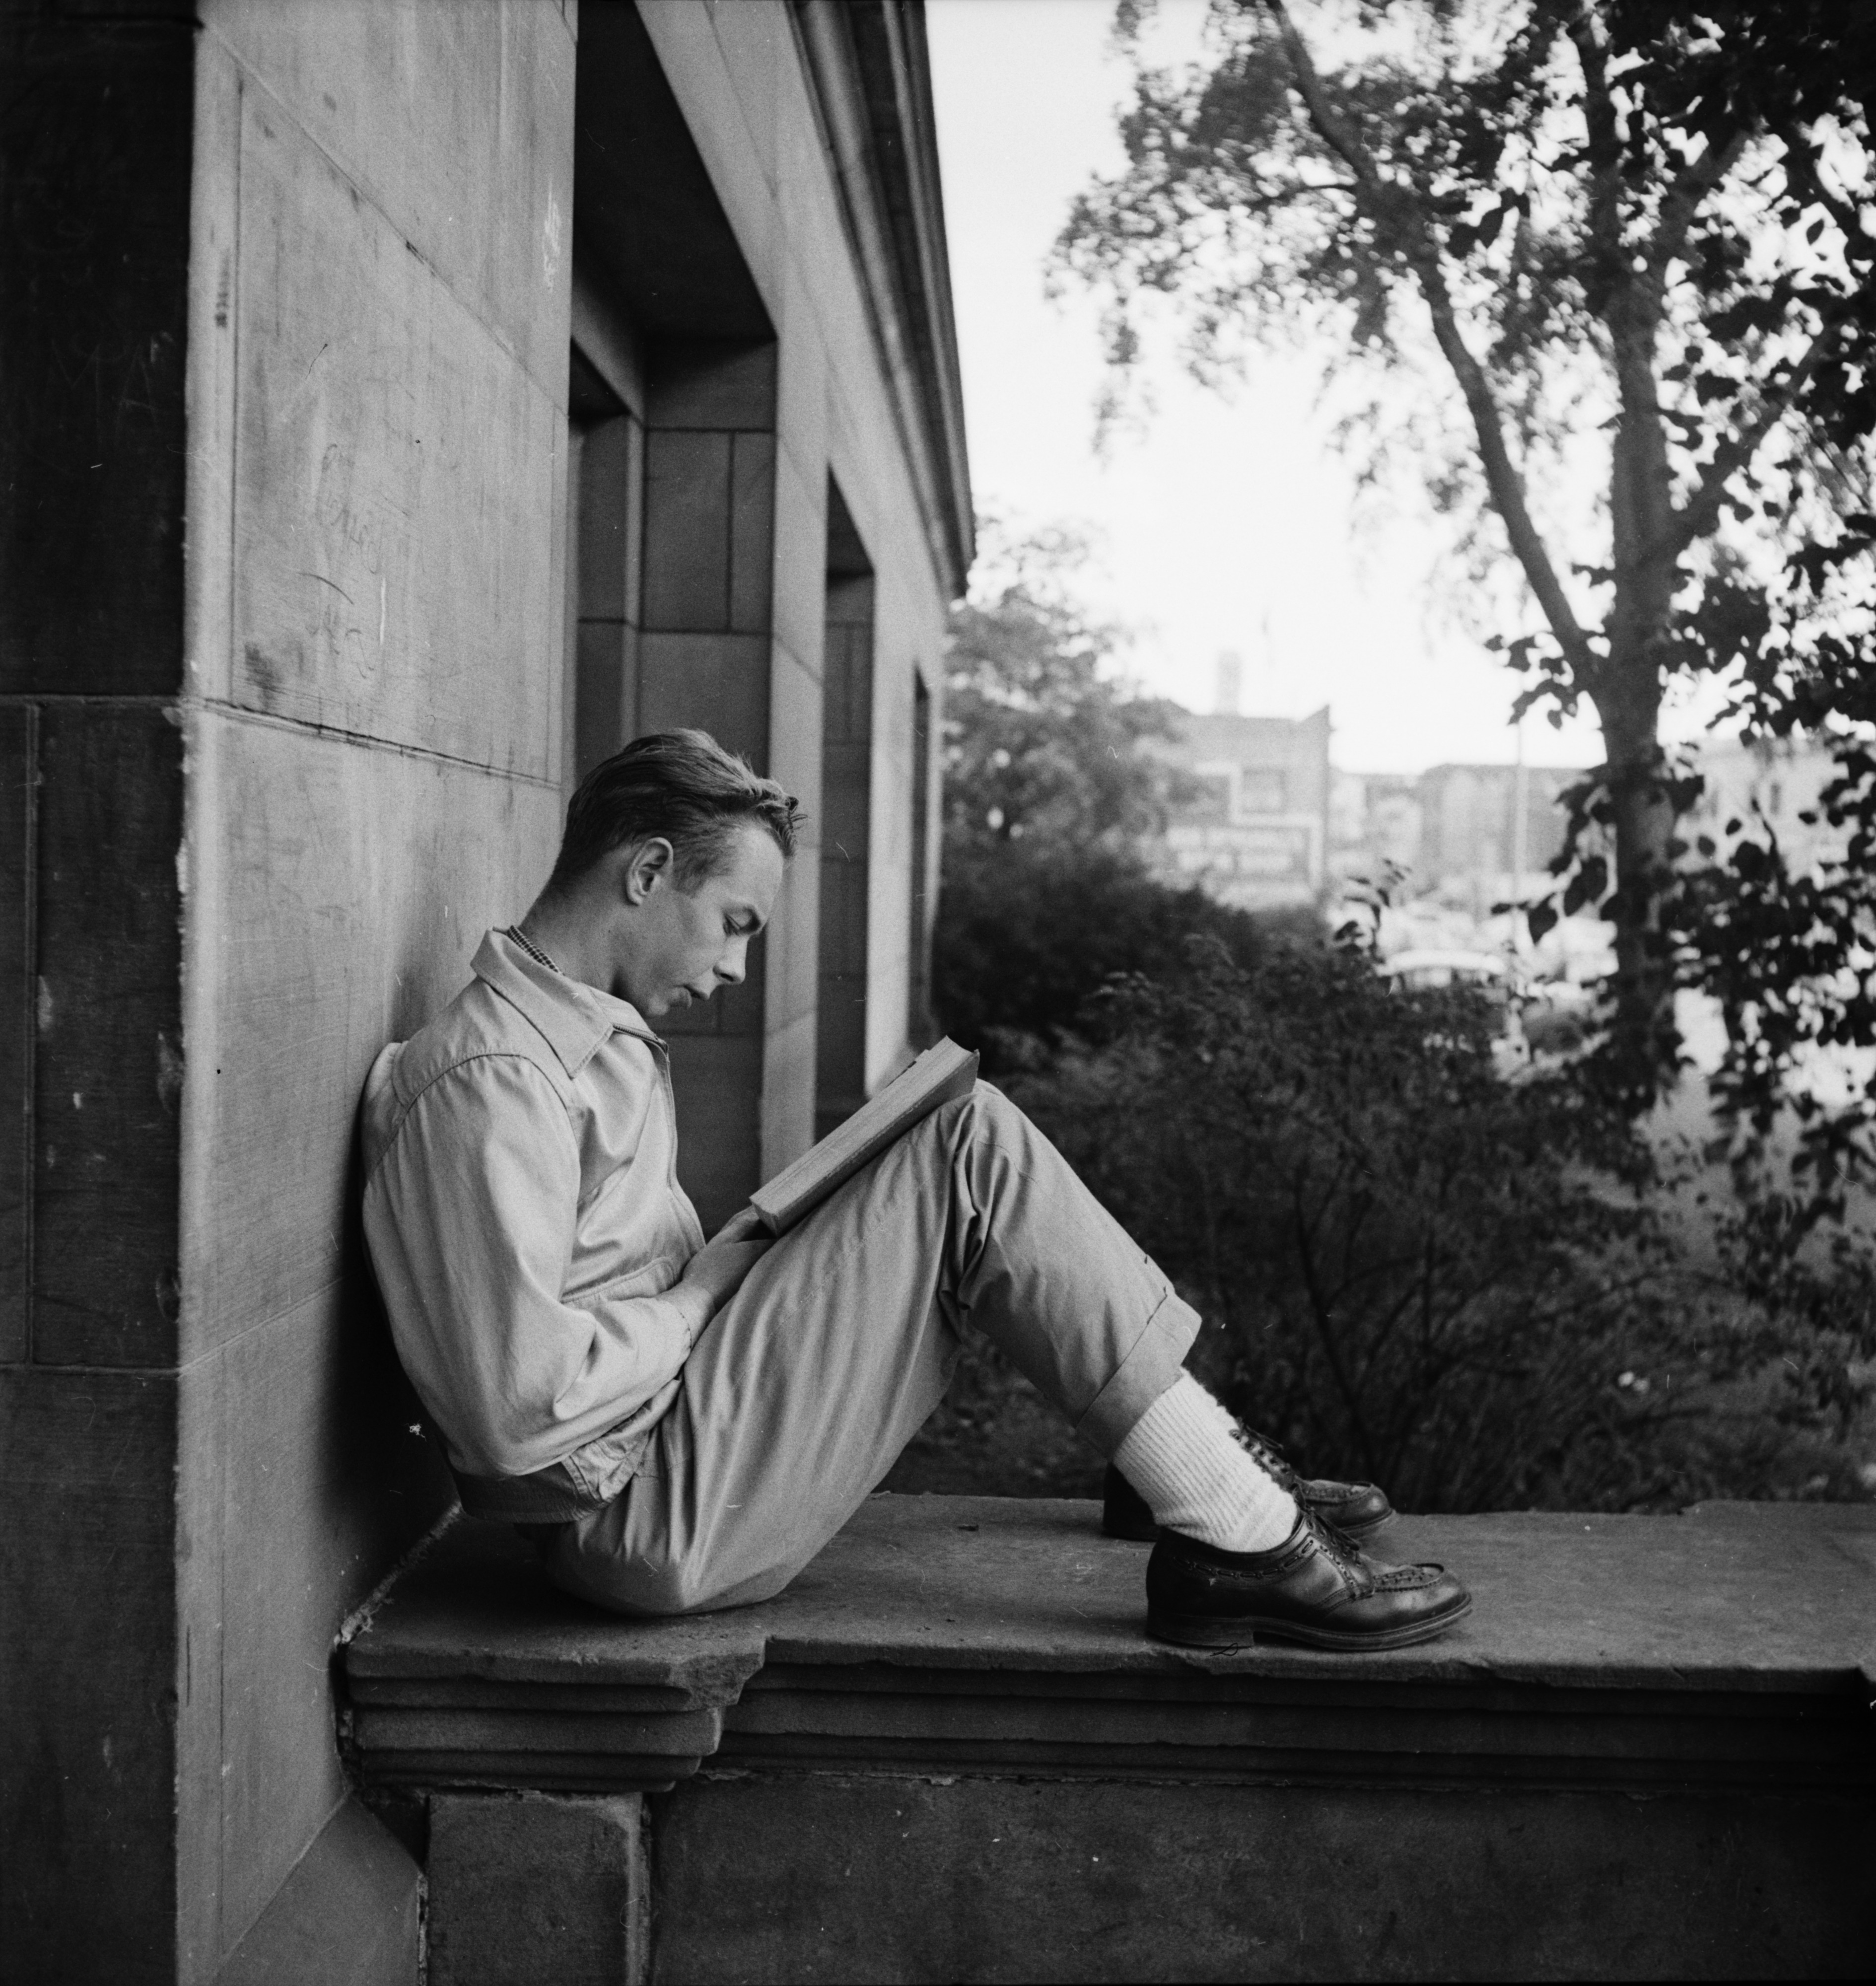 A Student Studies on the Steps of Ann Arbor High School, September 1952 image